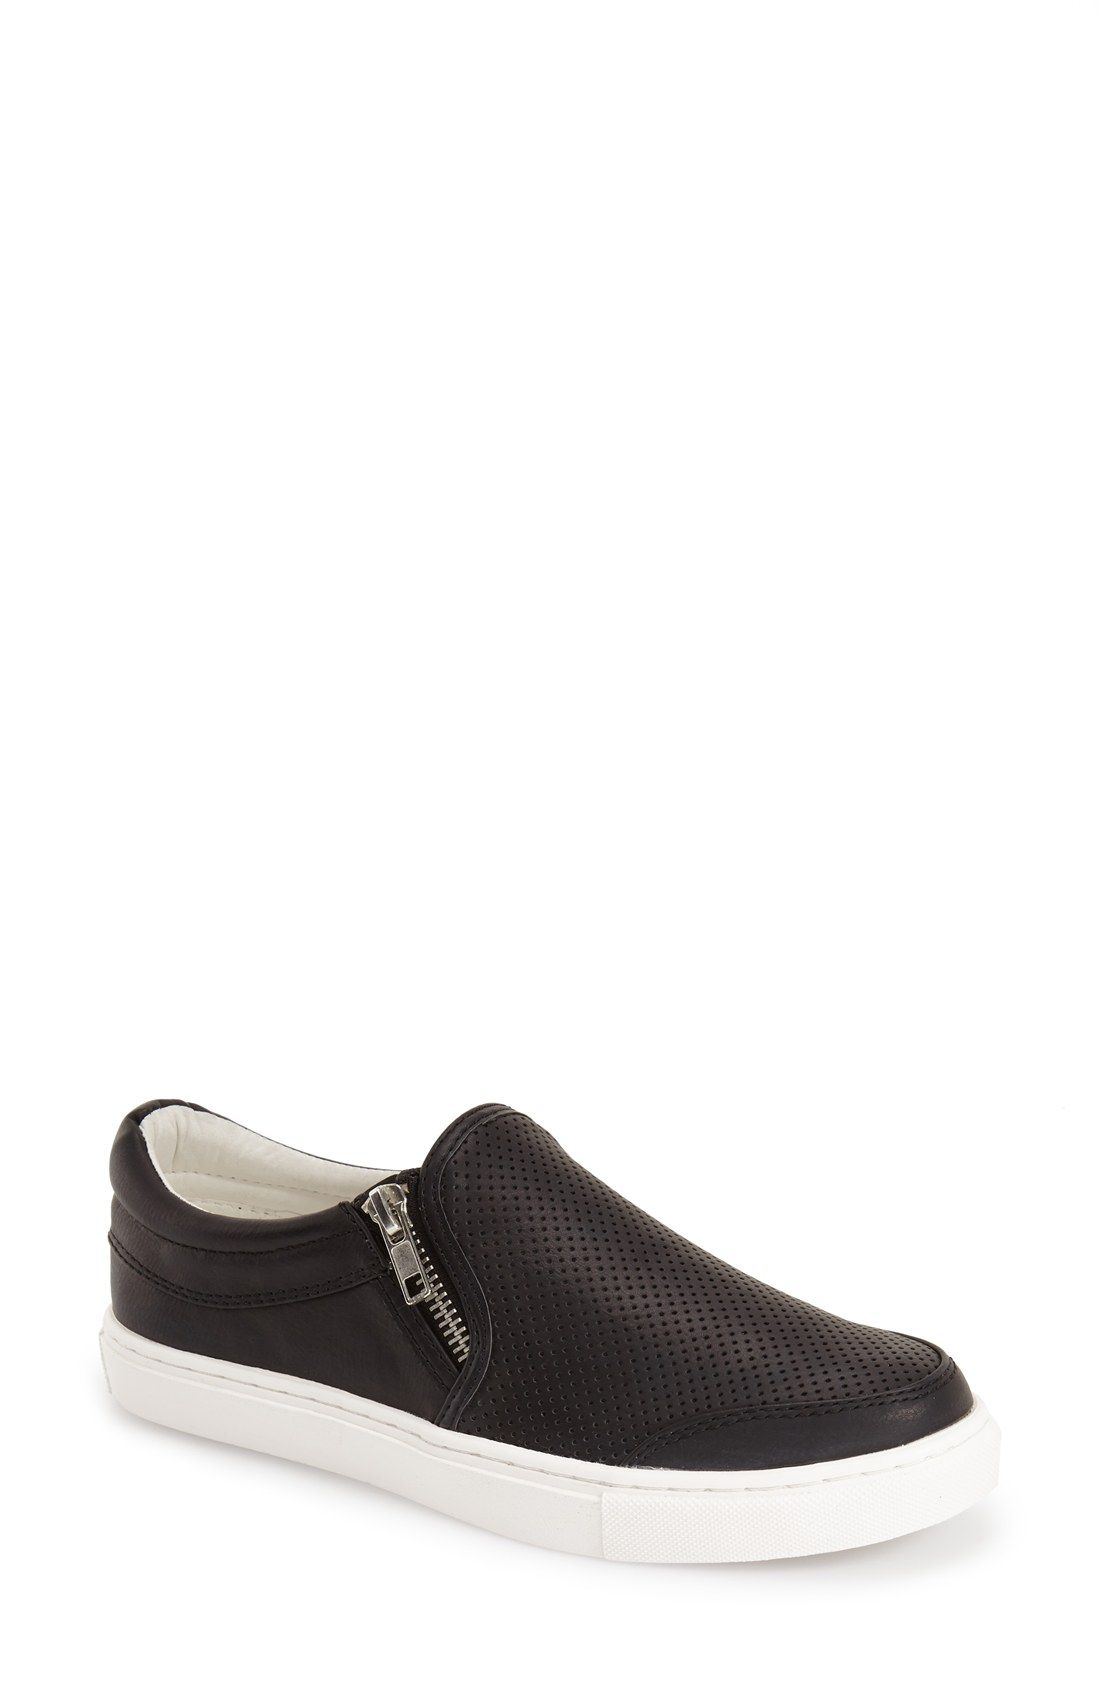 417c5cd0e3e Steve Madden 'Ellias' Slip-On Sneaker (Women) | Unlimited Shoes for ...